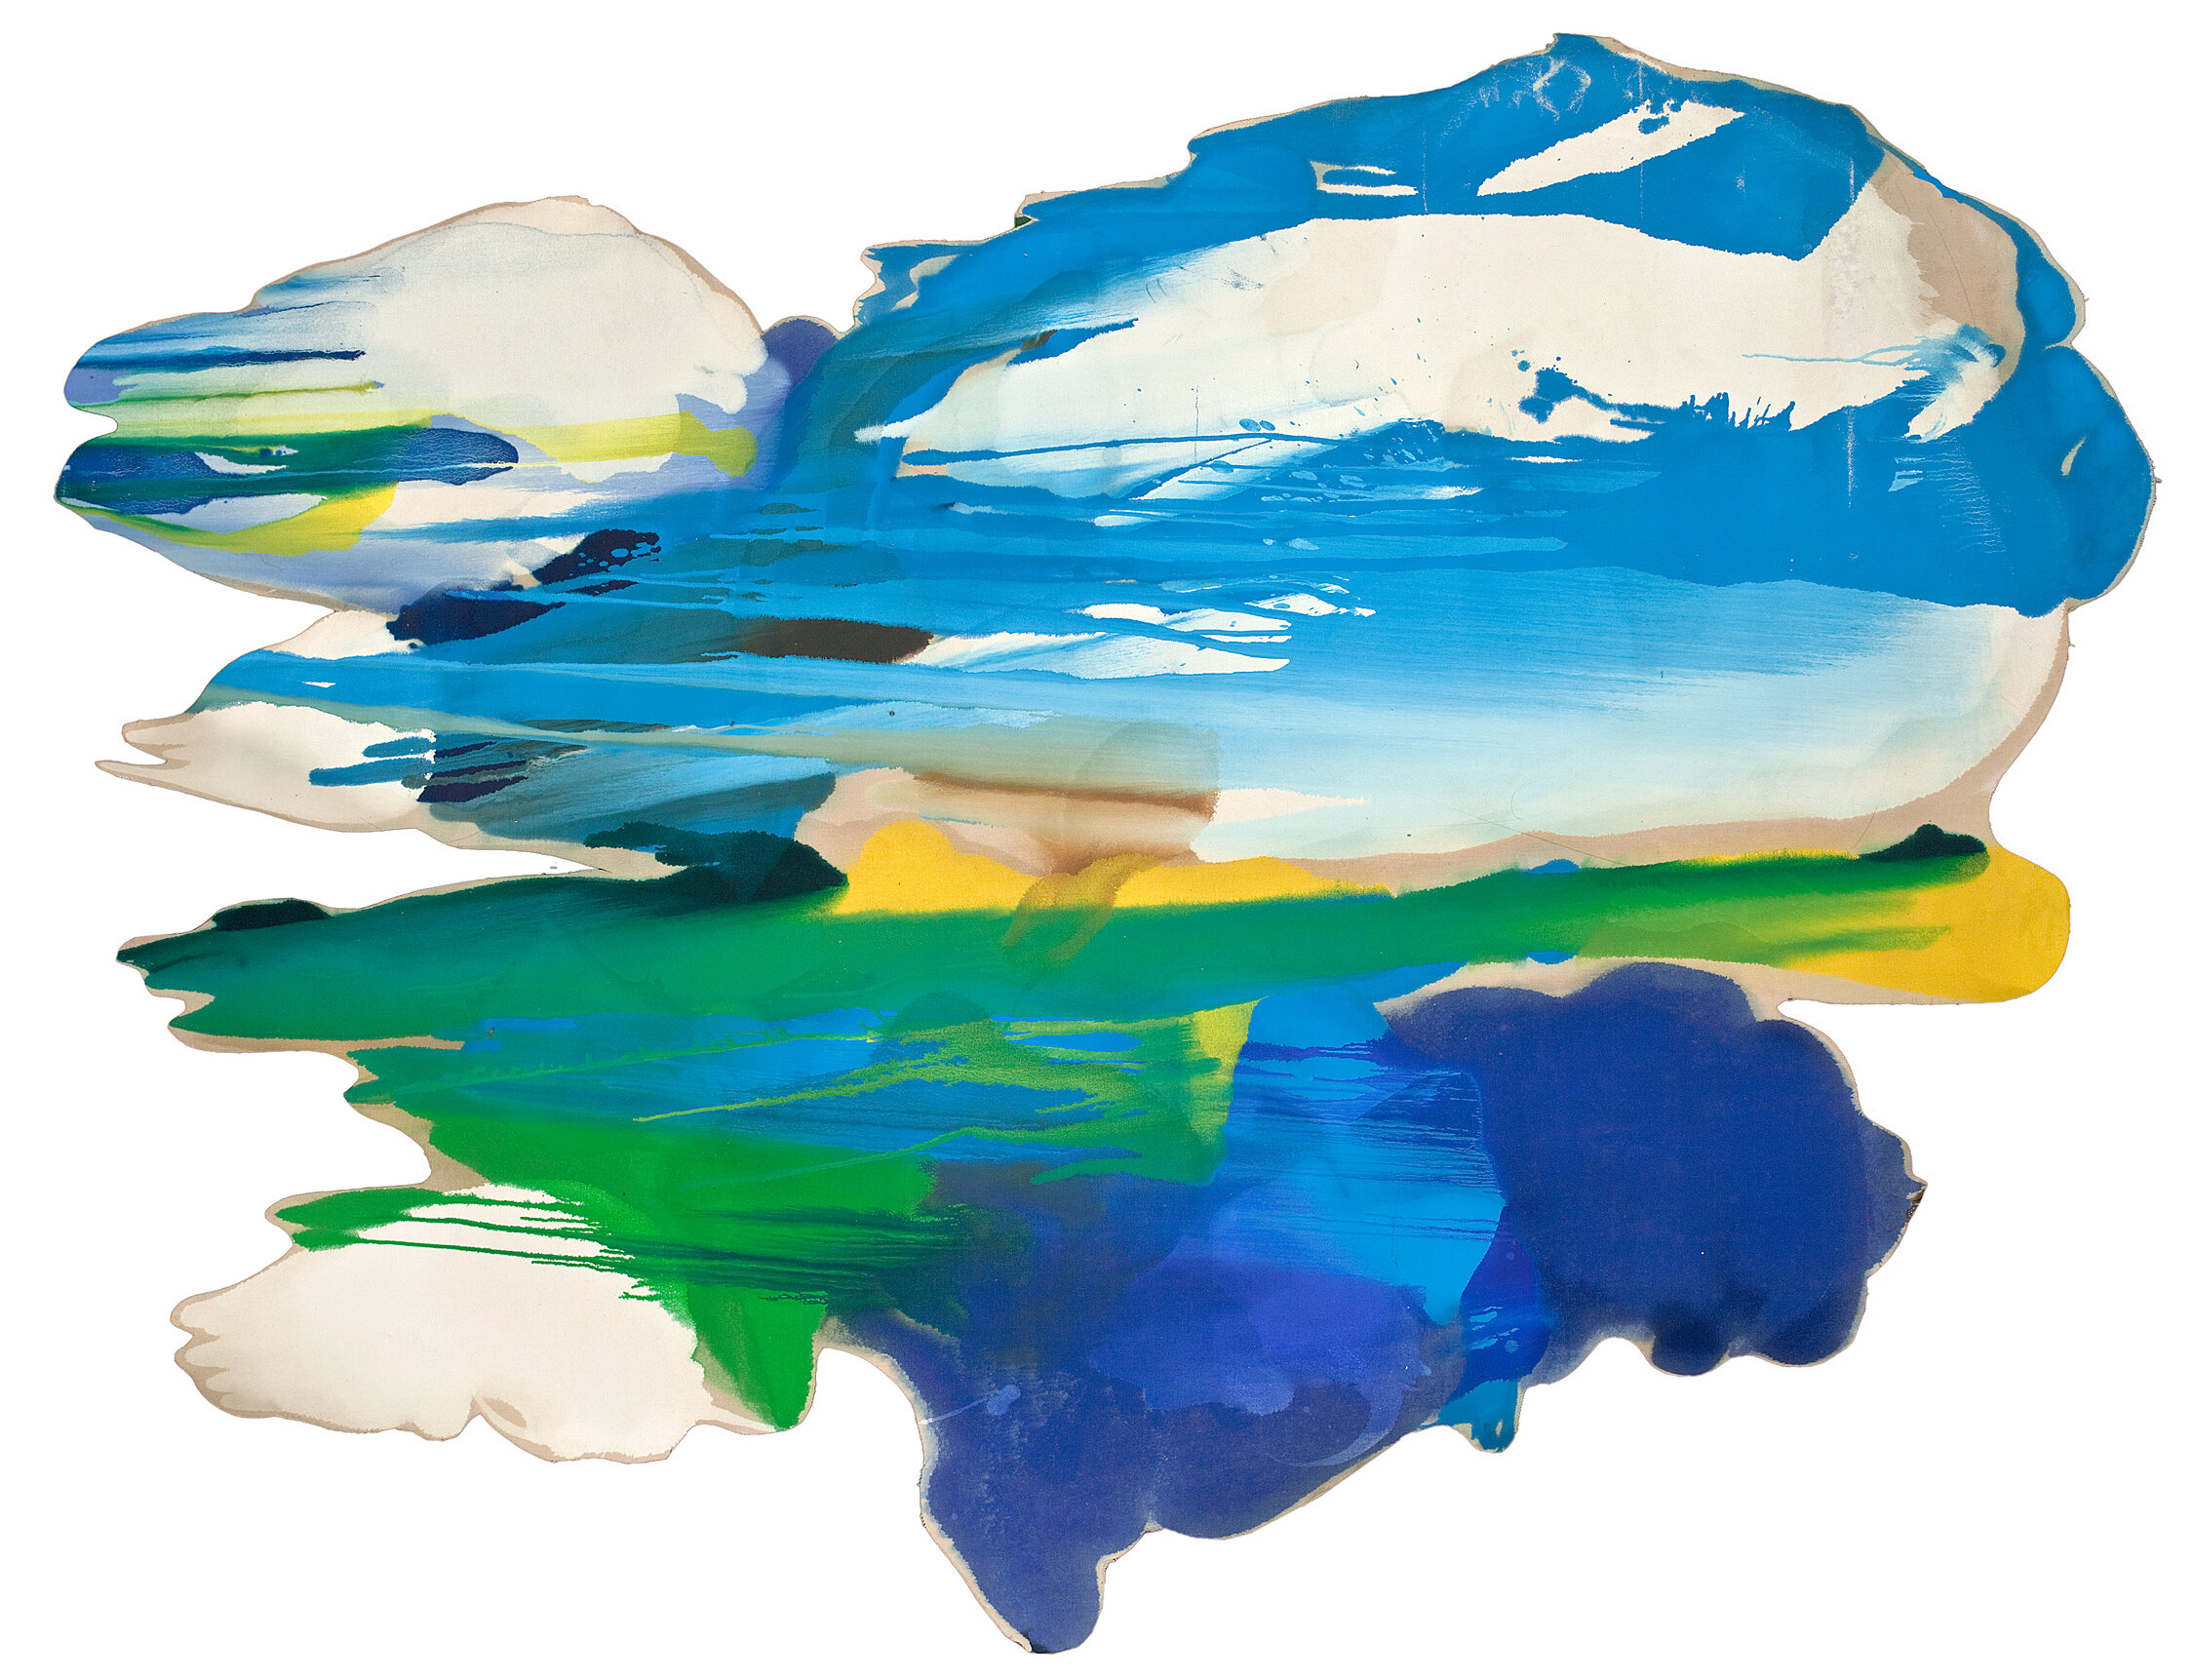 """Untitled, 1970s, Oil on Canvas, 60""""x70""""  Poured paint colorfield painting with blue, green, yellow and white cut on unprimed canvas"""